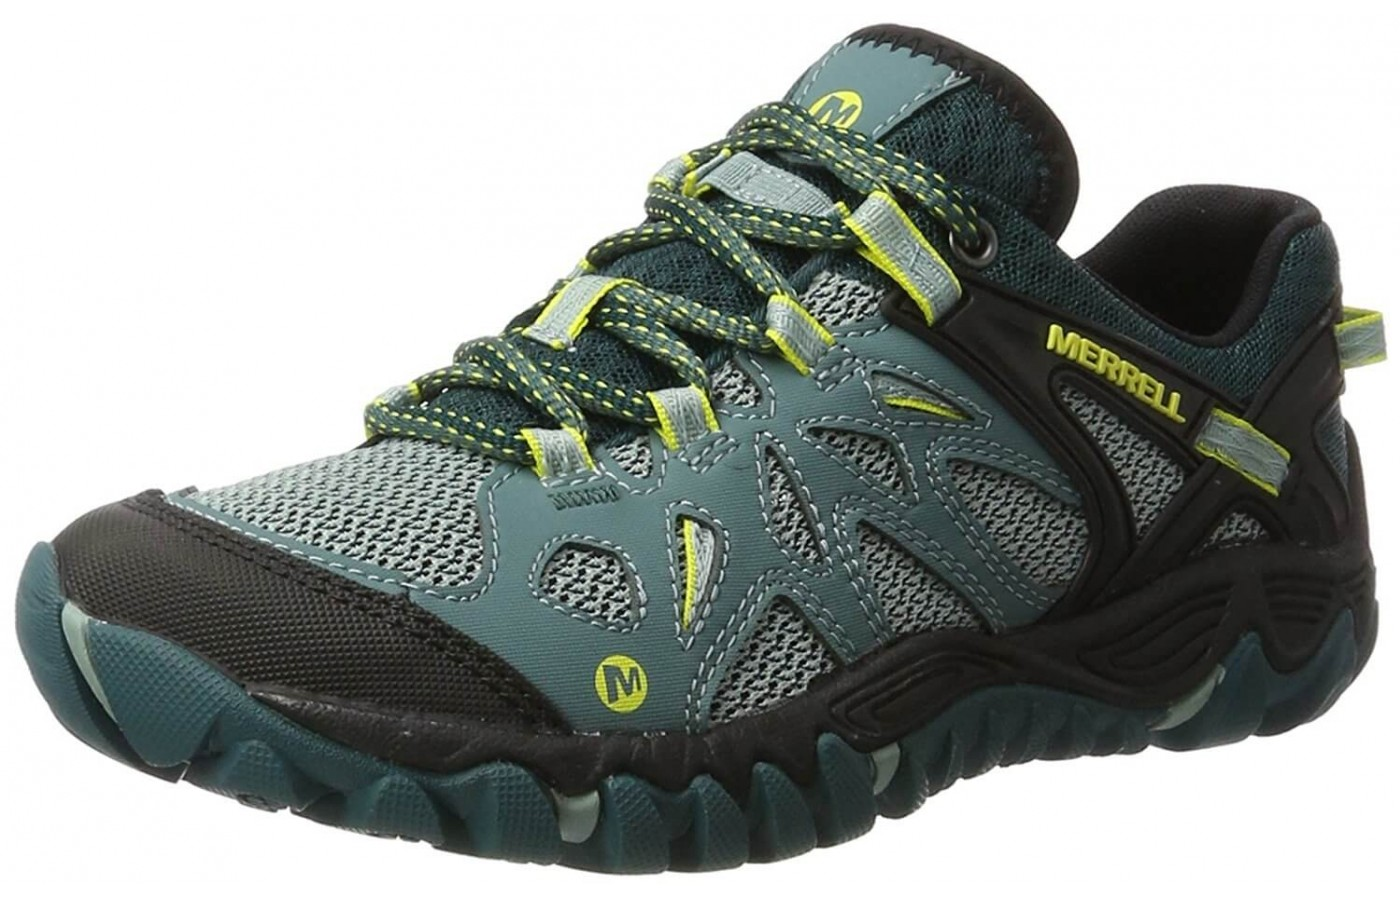 Merrell All Out Blaze Aero Sport can handle tough terrain